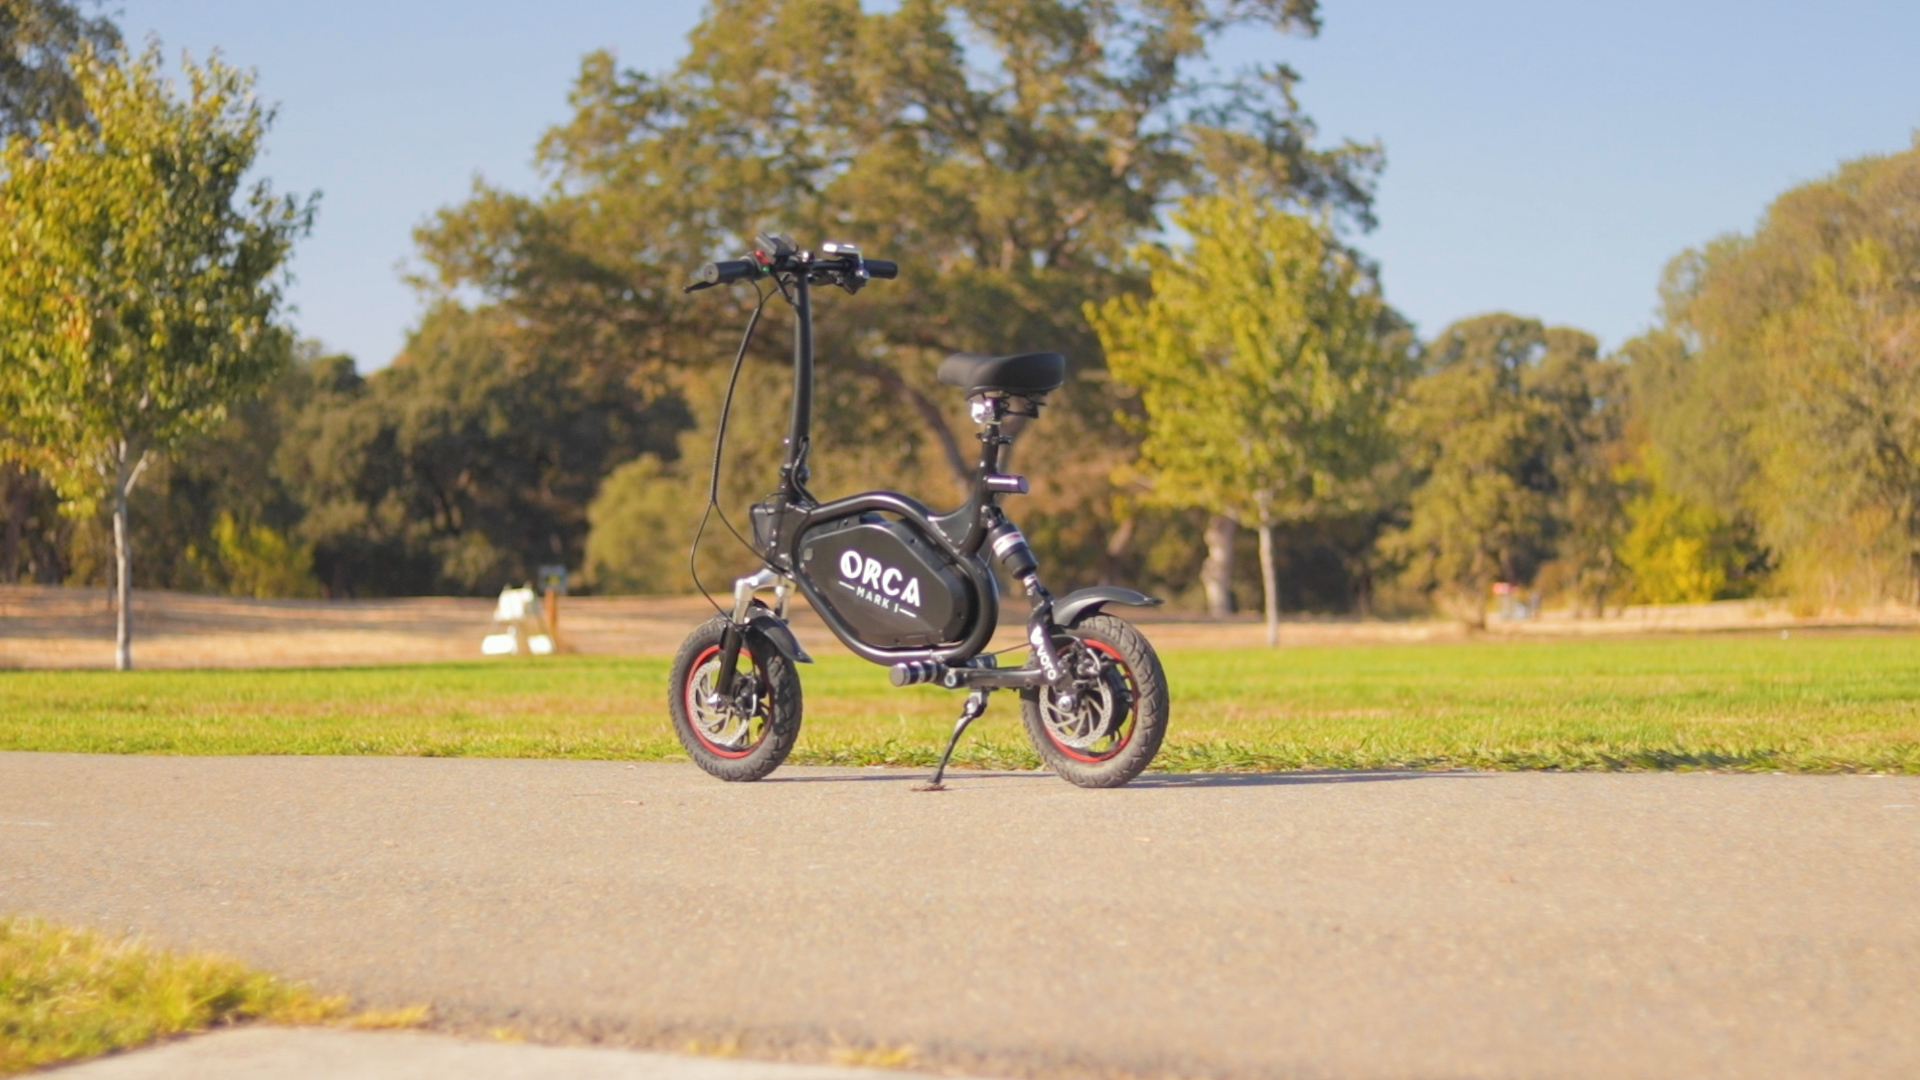 voro-motors-orca-mark-1-electric-scooter-review-2019-profile-3.jpg